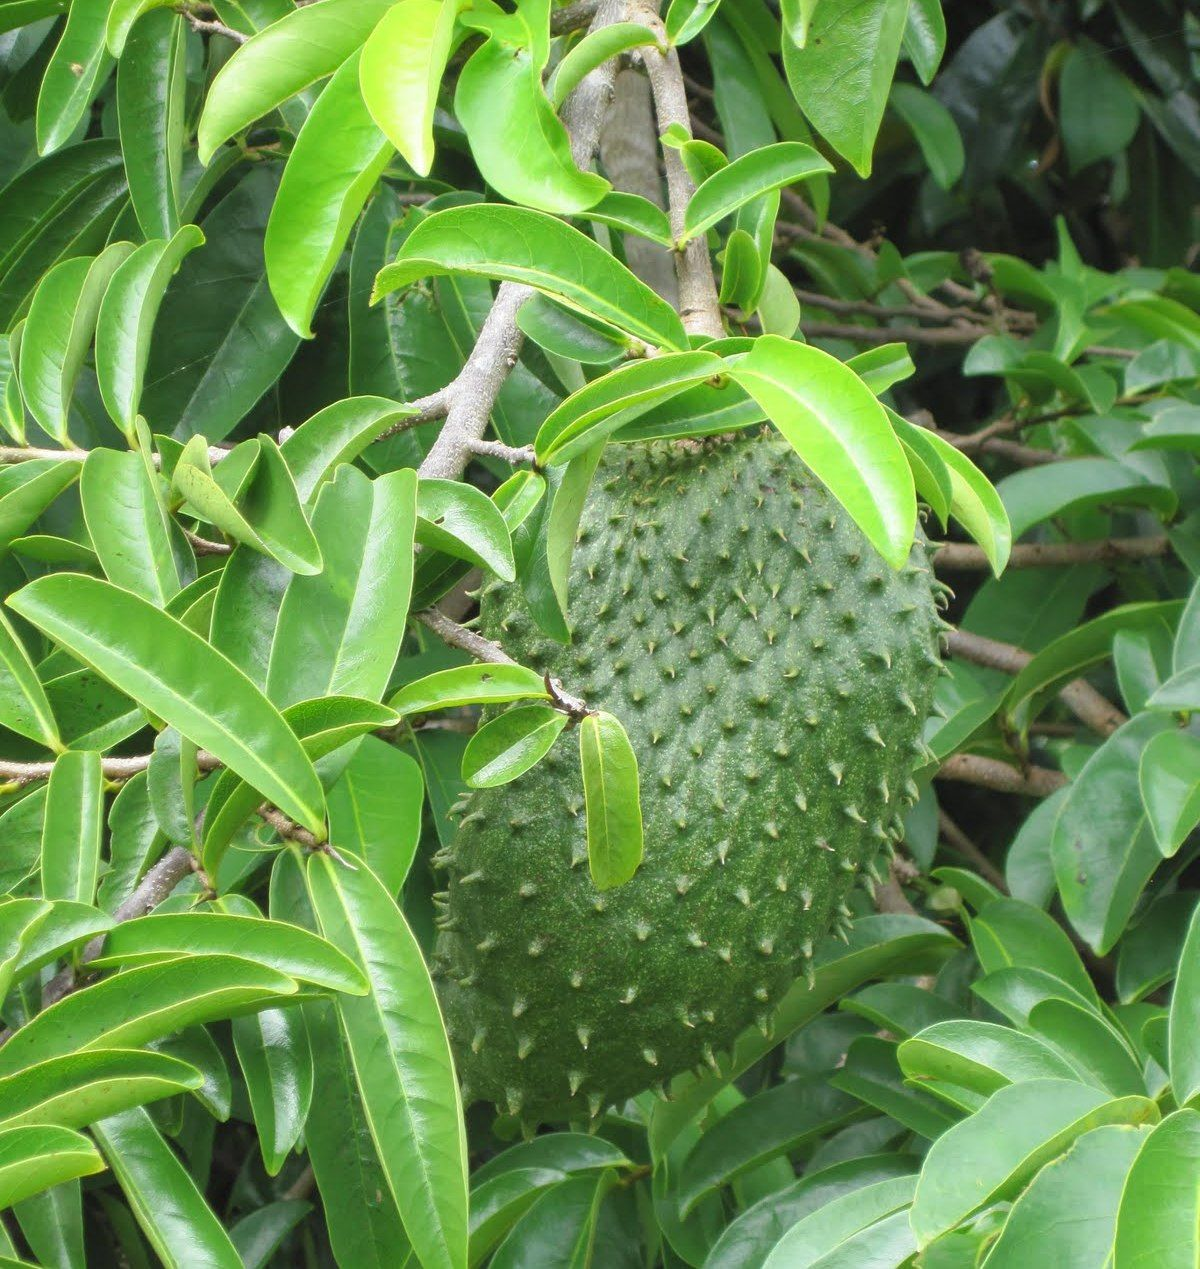 Soursop -Fights Cancer. Said to be 10,000 more times effective than traditional chemotherapy drugs at slowing the growth of cancer cells. Has many other medicinal properties.